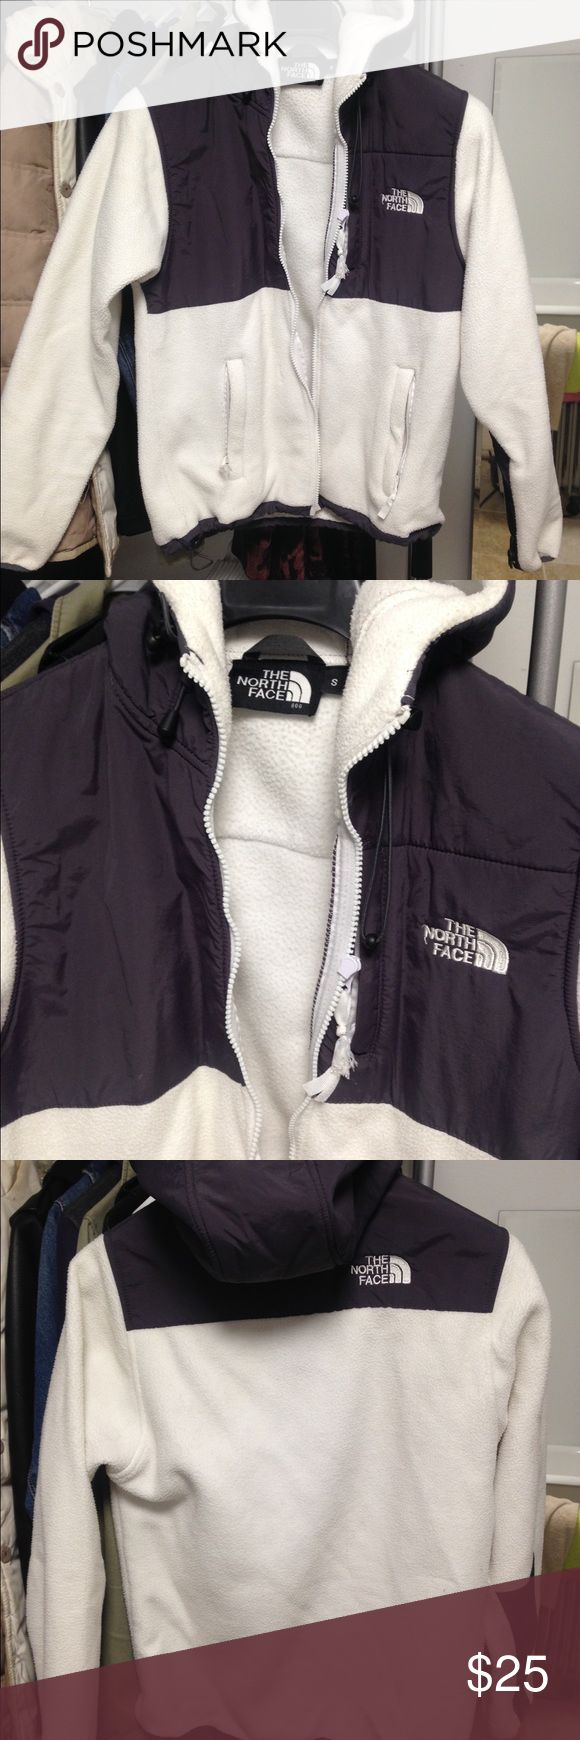 White North Face Jacket This has been sitting around in my storage for so long and I've never worn it. Somebody take it! It's very warm I promise! No stains that I can see and its in nice shape. Jackets & Coats